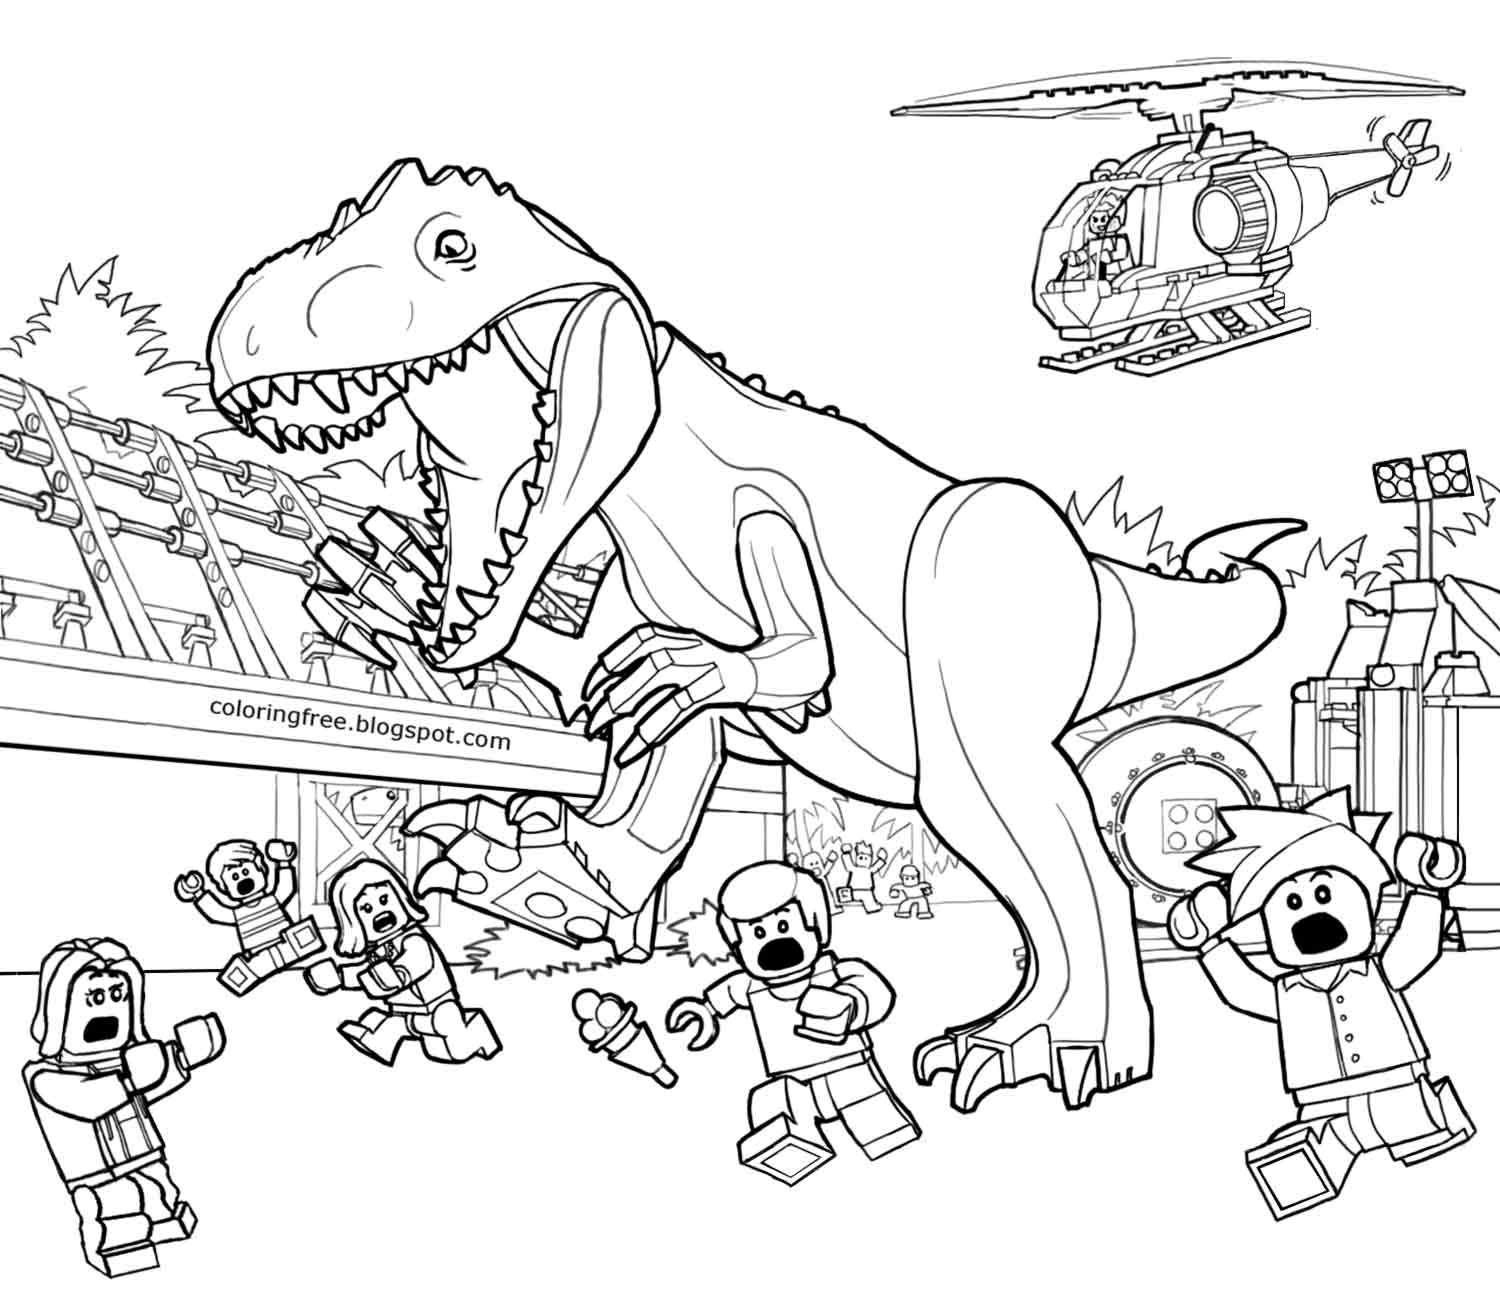 Free Coloring Pages Printable Pictures To Color Kids And Kindergarten Activities Dinosaur Coloring Pages Lego Coloring Pages Lego Coloring